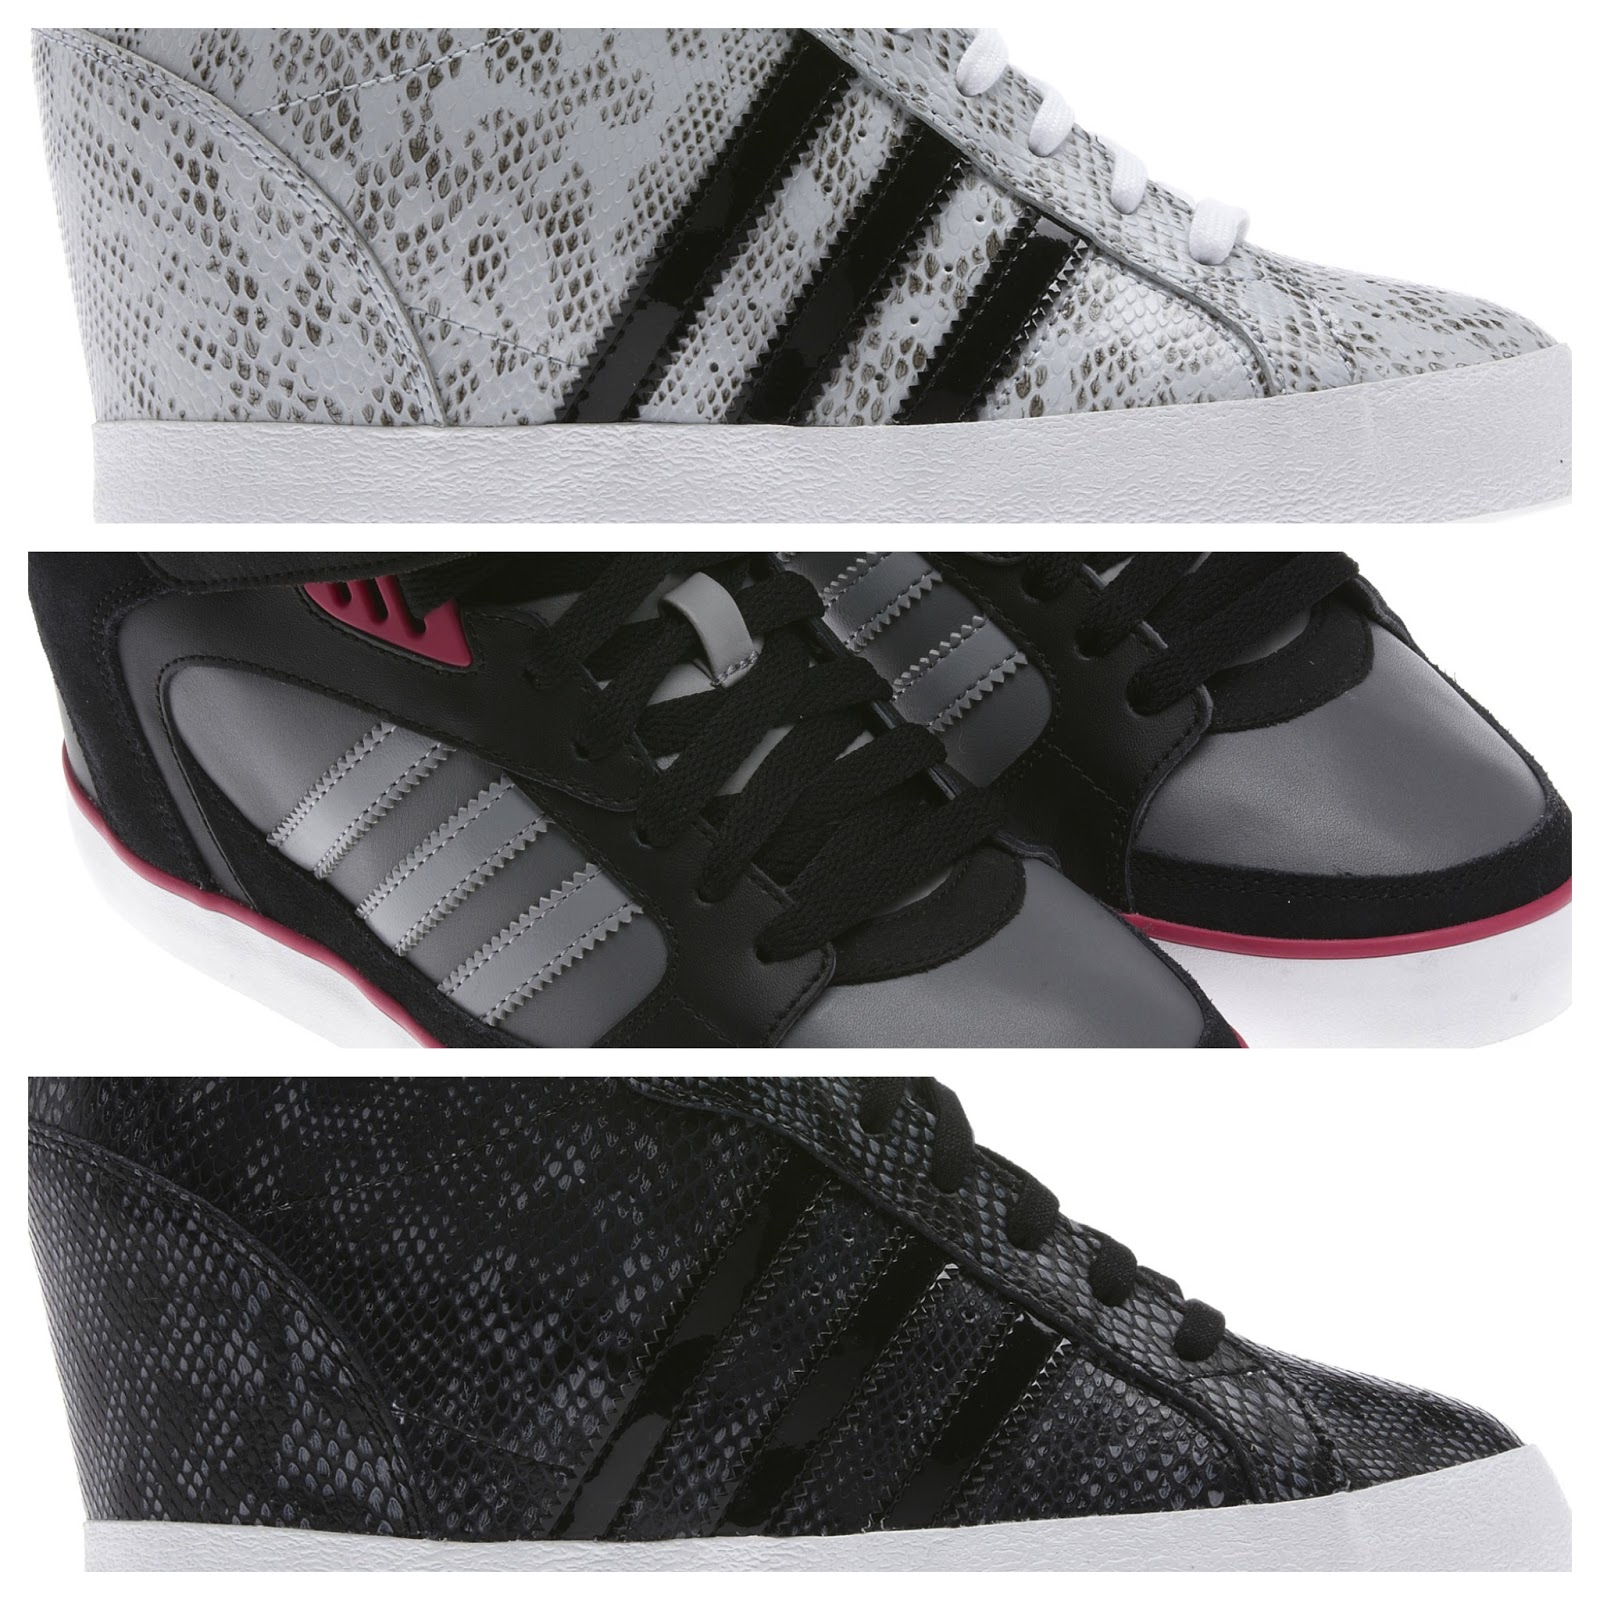 low priced 14d51 b01c6 Adidas Wedge-Heeled Sneakers